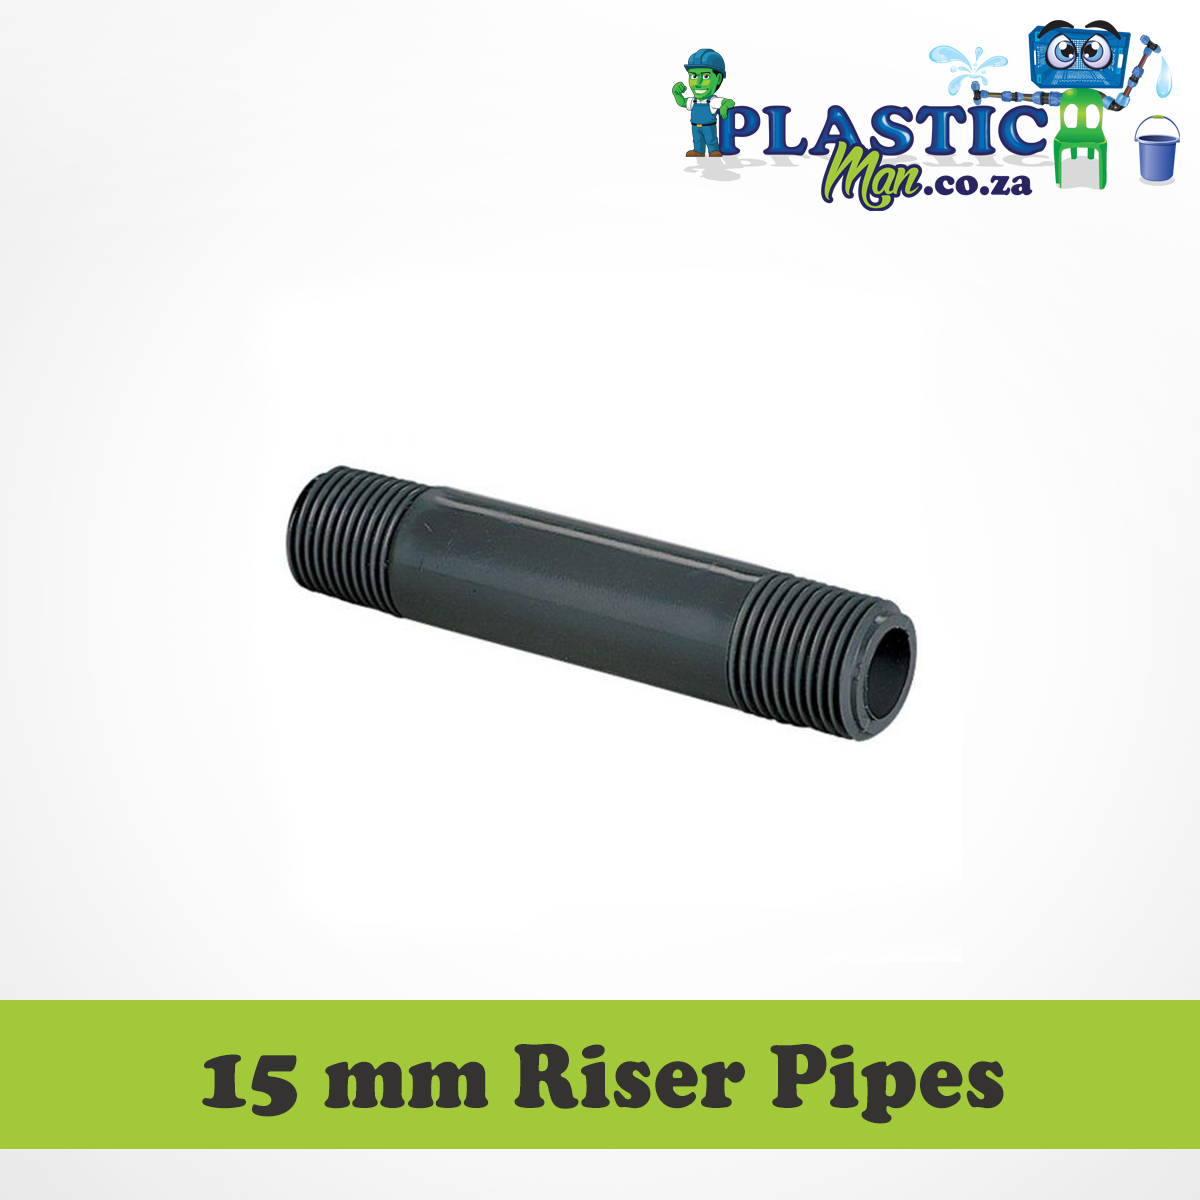 15 mm Plastic Man Riser Pipes